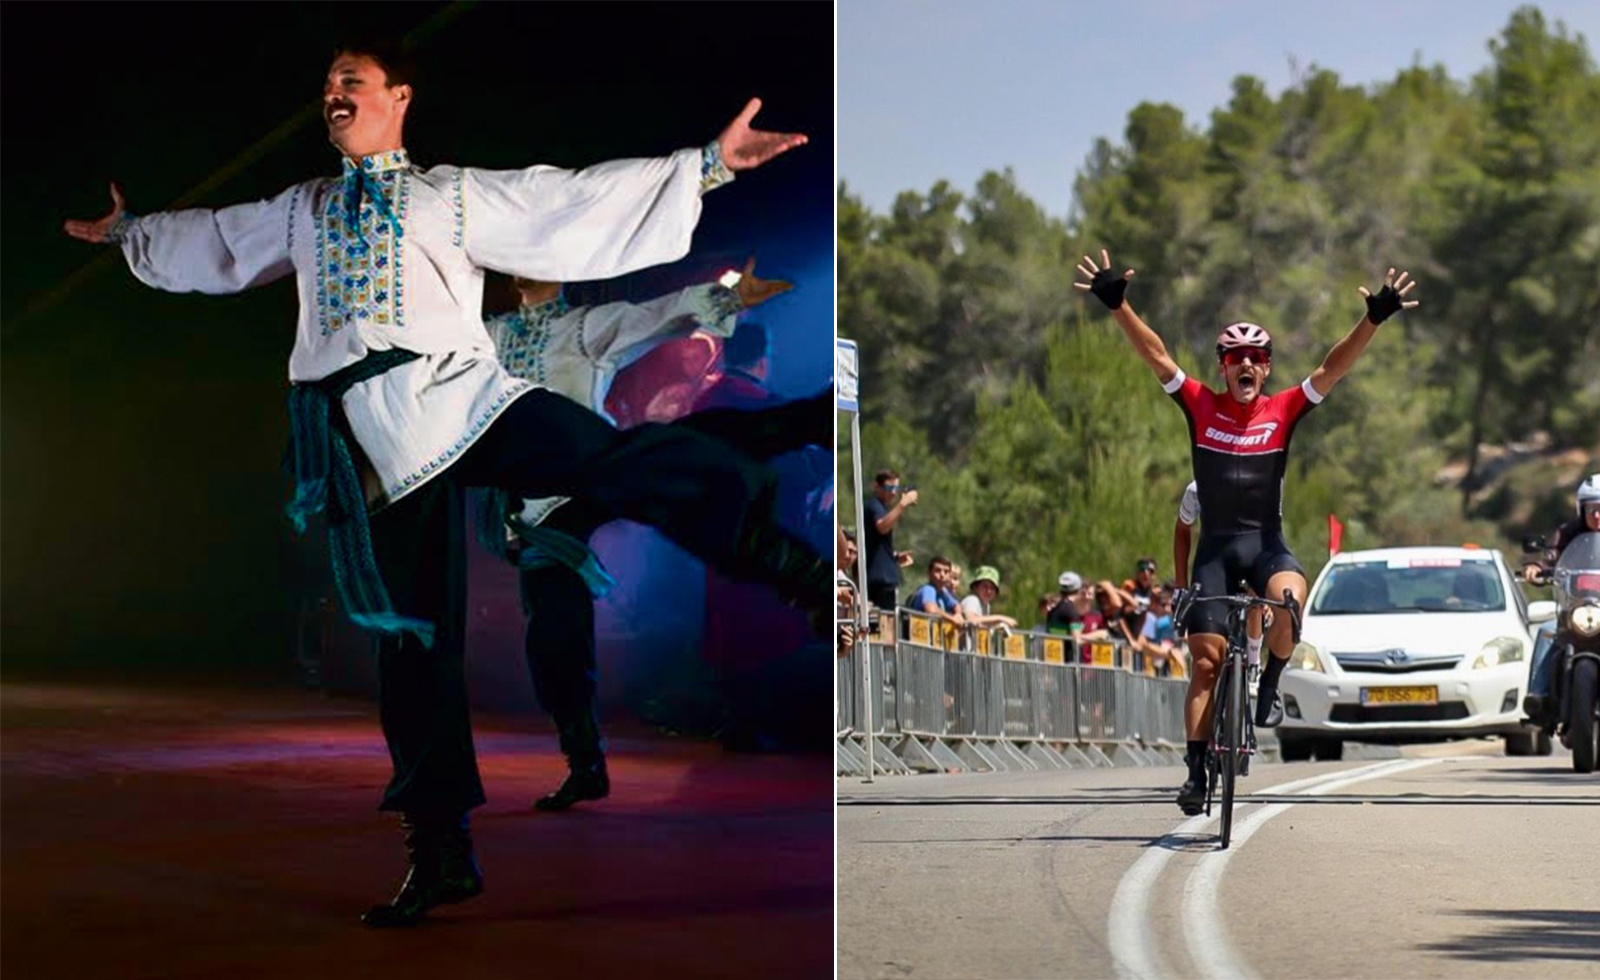 The folk dancer who just won a national road cycling title